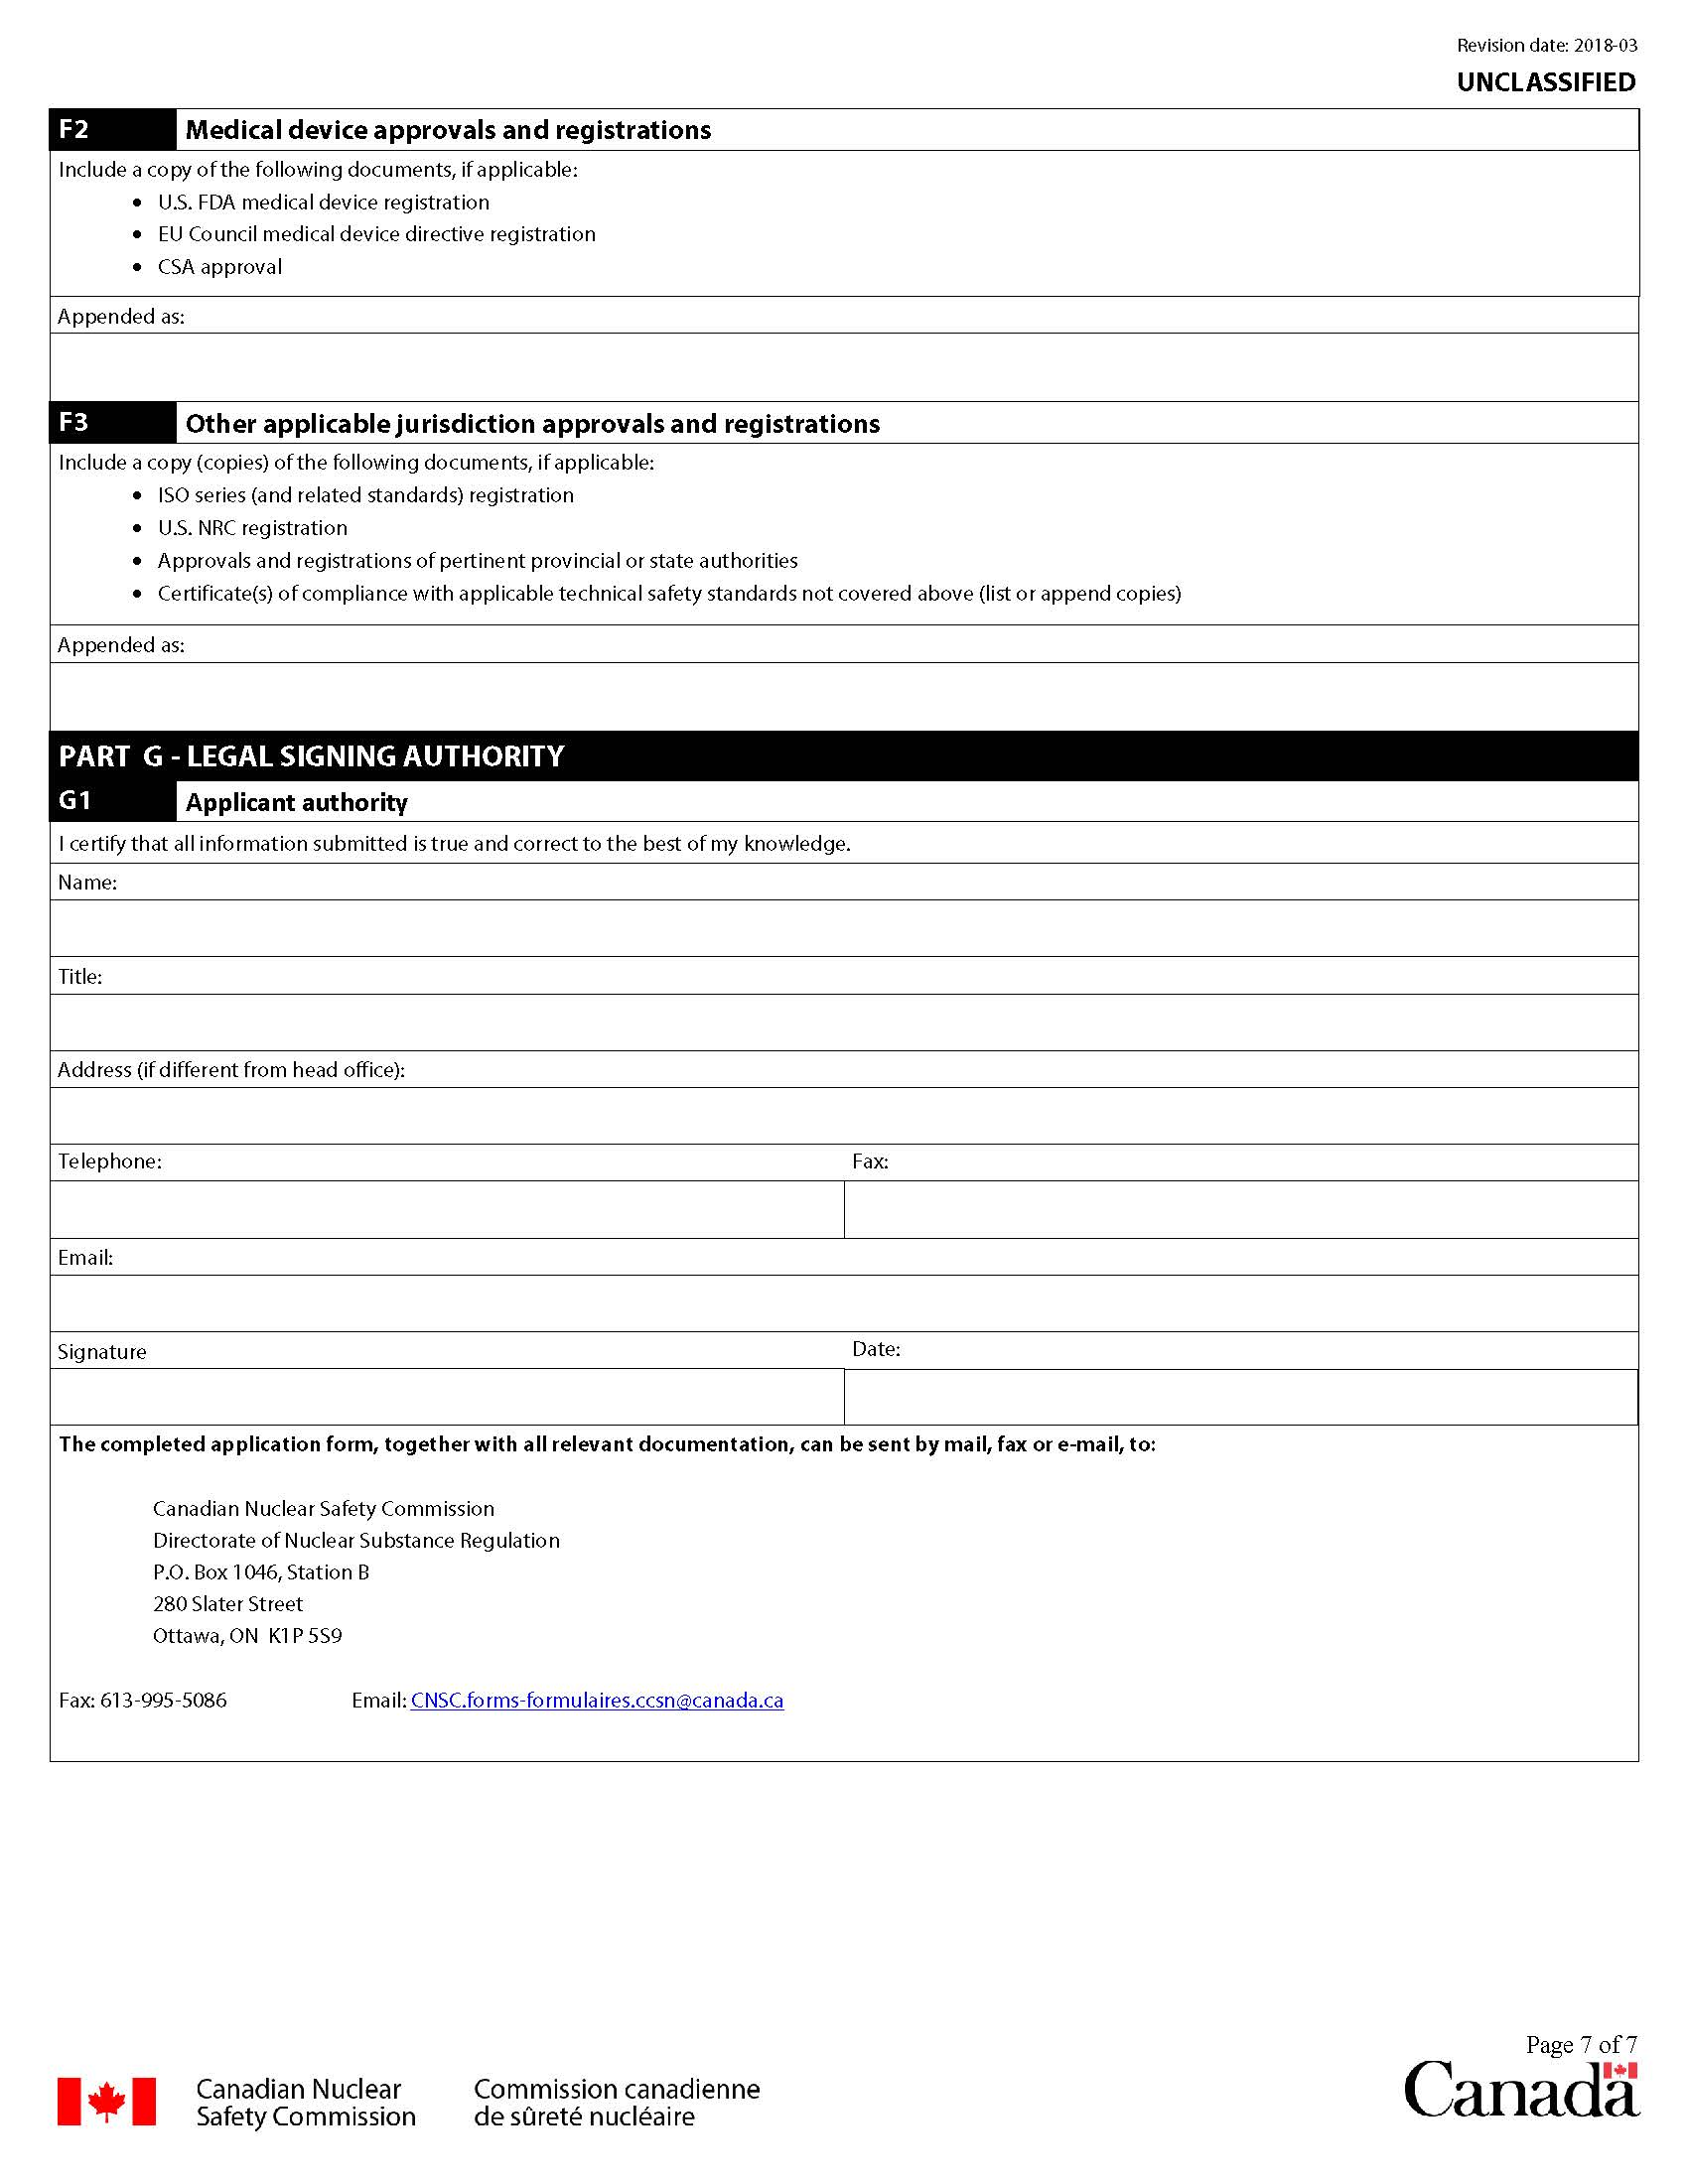 Application form for certification of radiation devices or Class II prescribed equipment: page 7